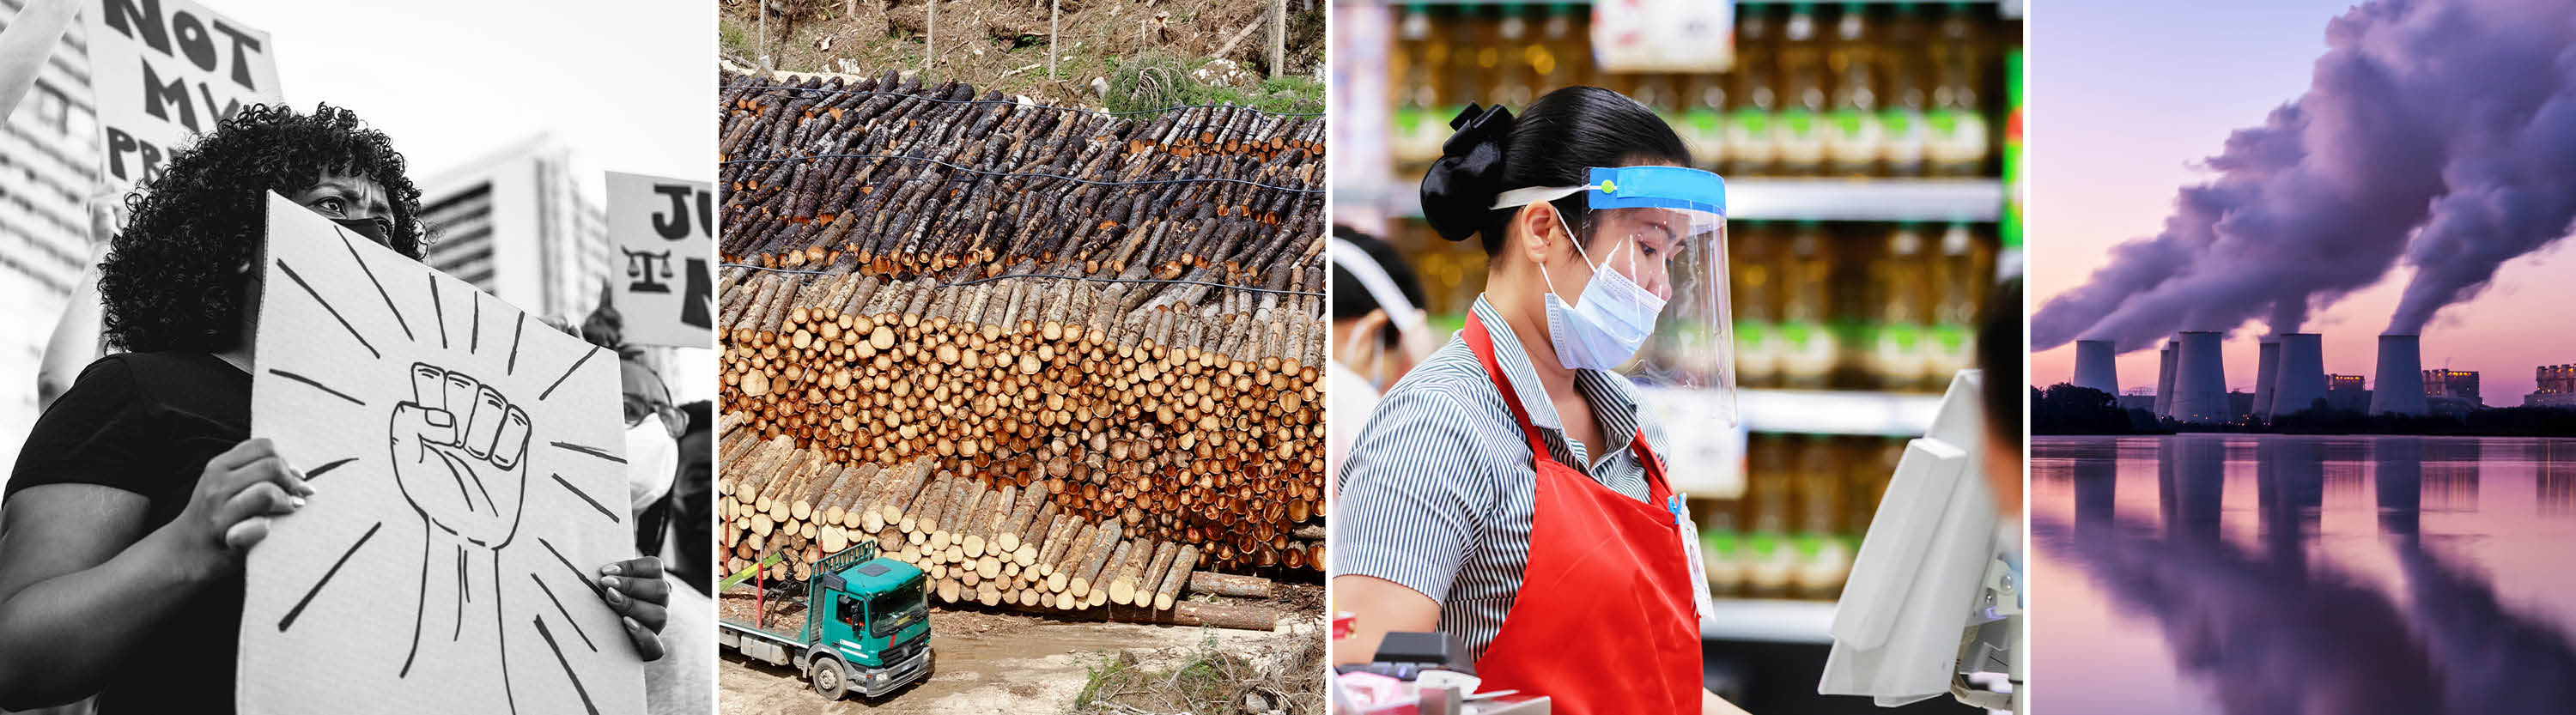 four images: a woman protesting, a forest being cut down, a grocery store employee wearing a mask, and a factory spewing smoke